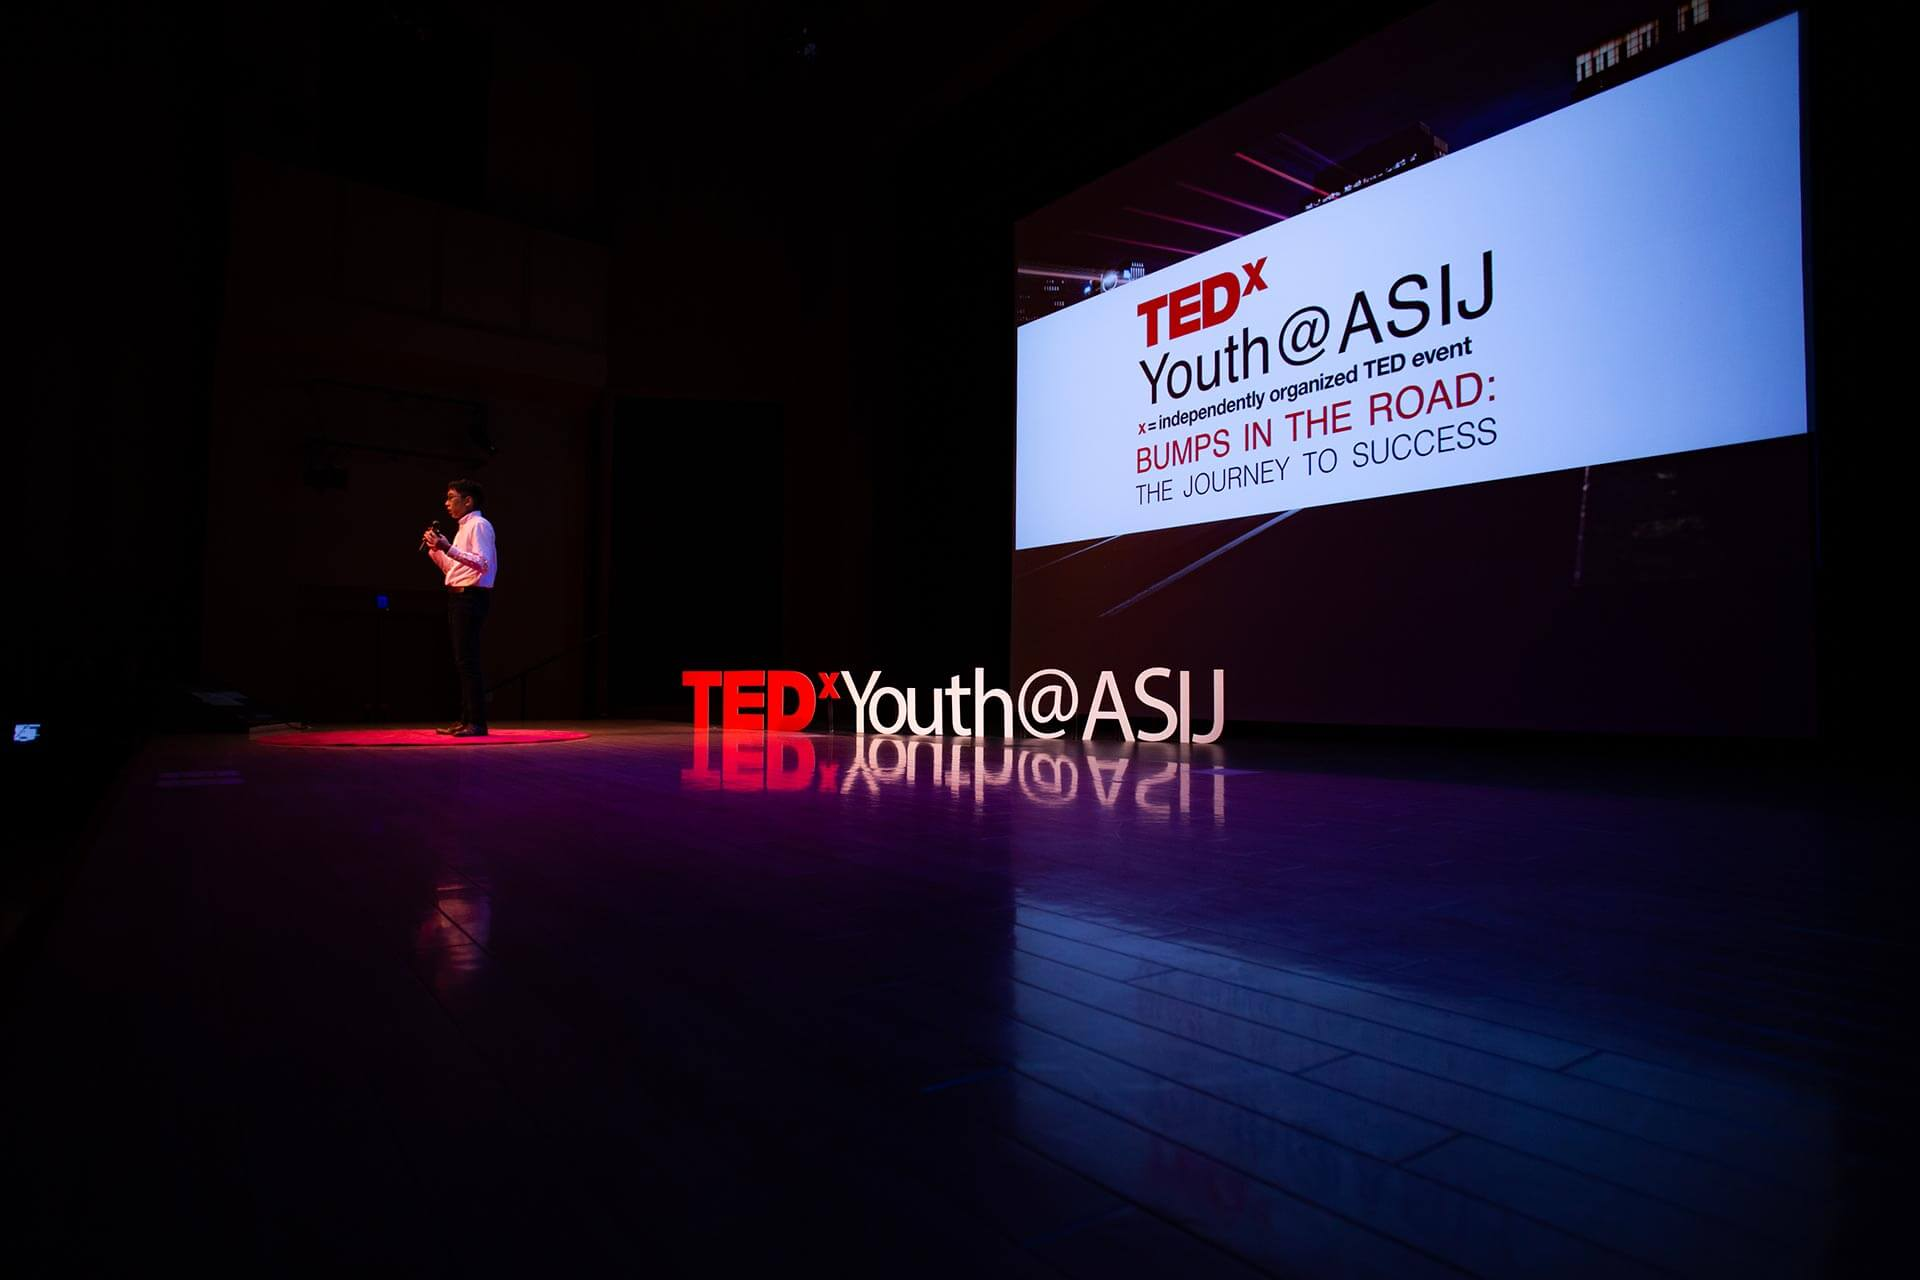 A High School Student Introduces the Next TedX Speaker